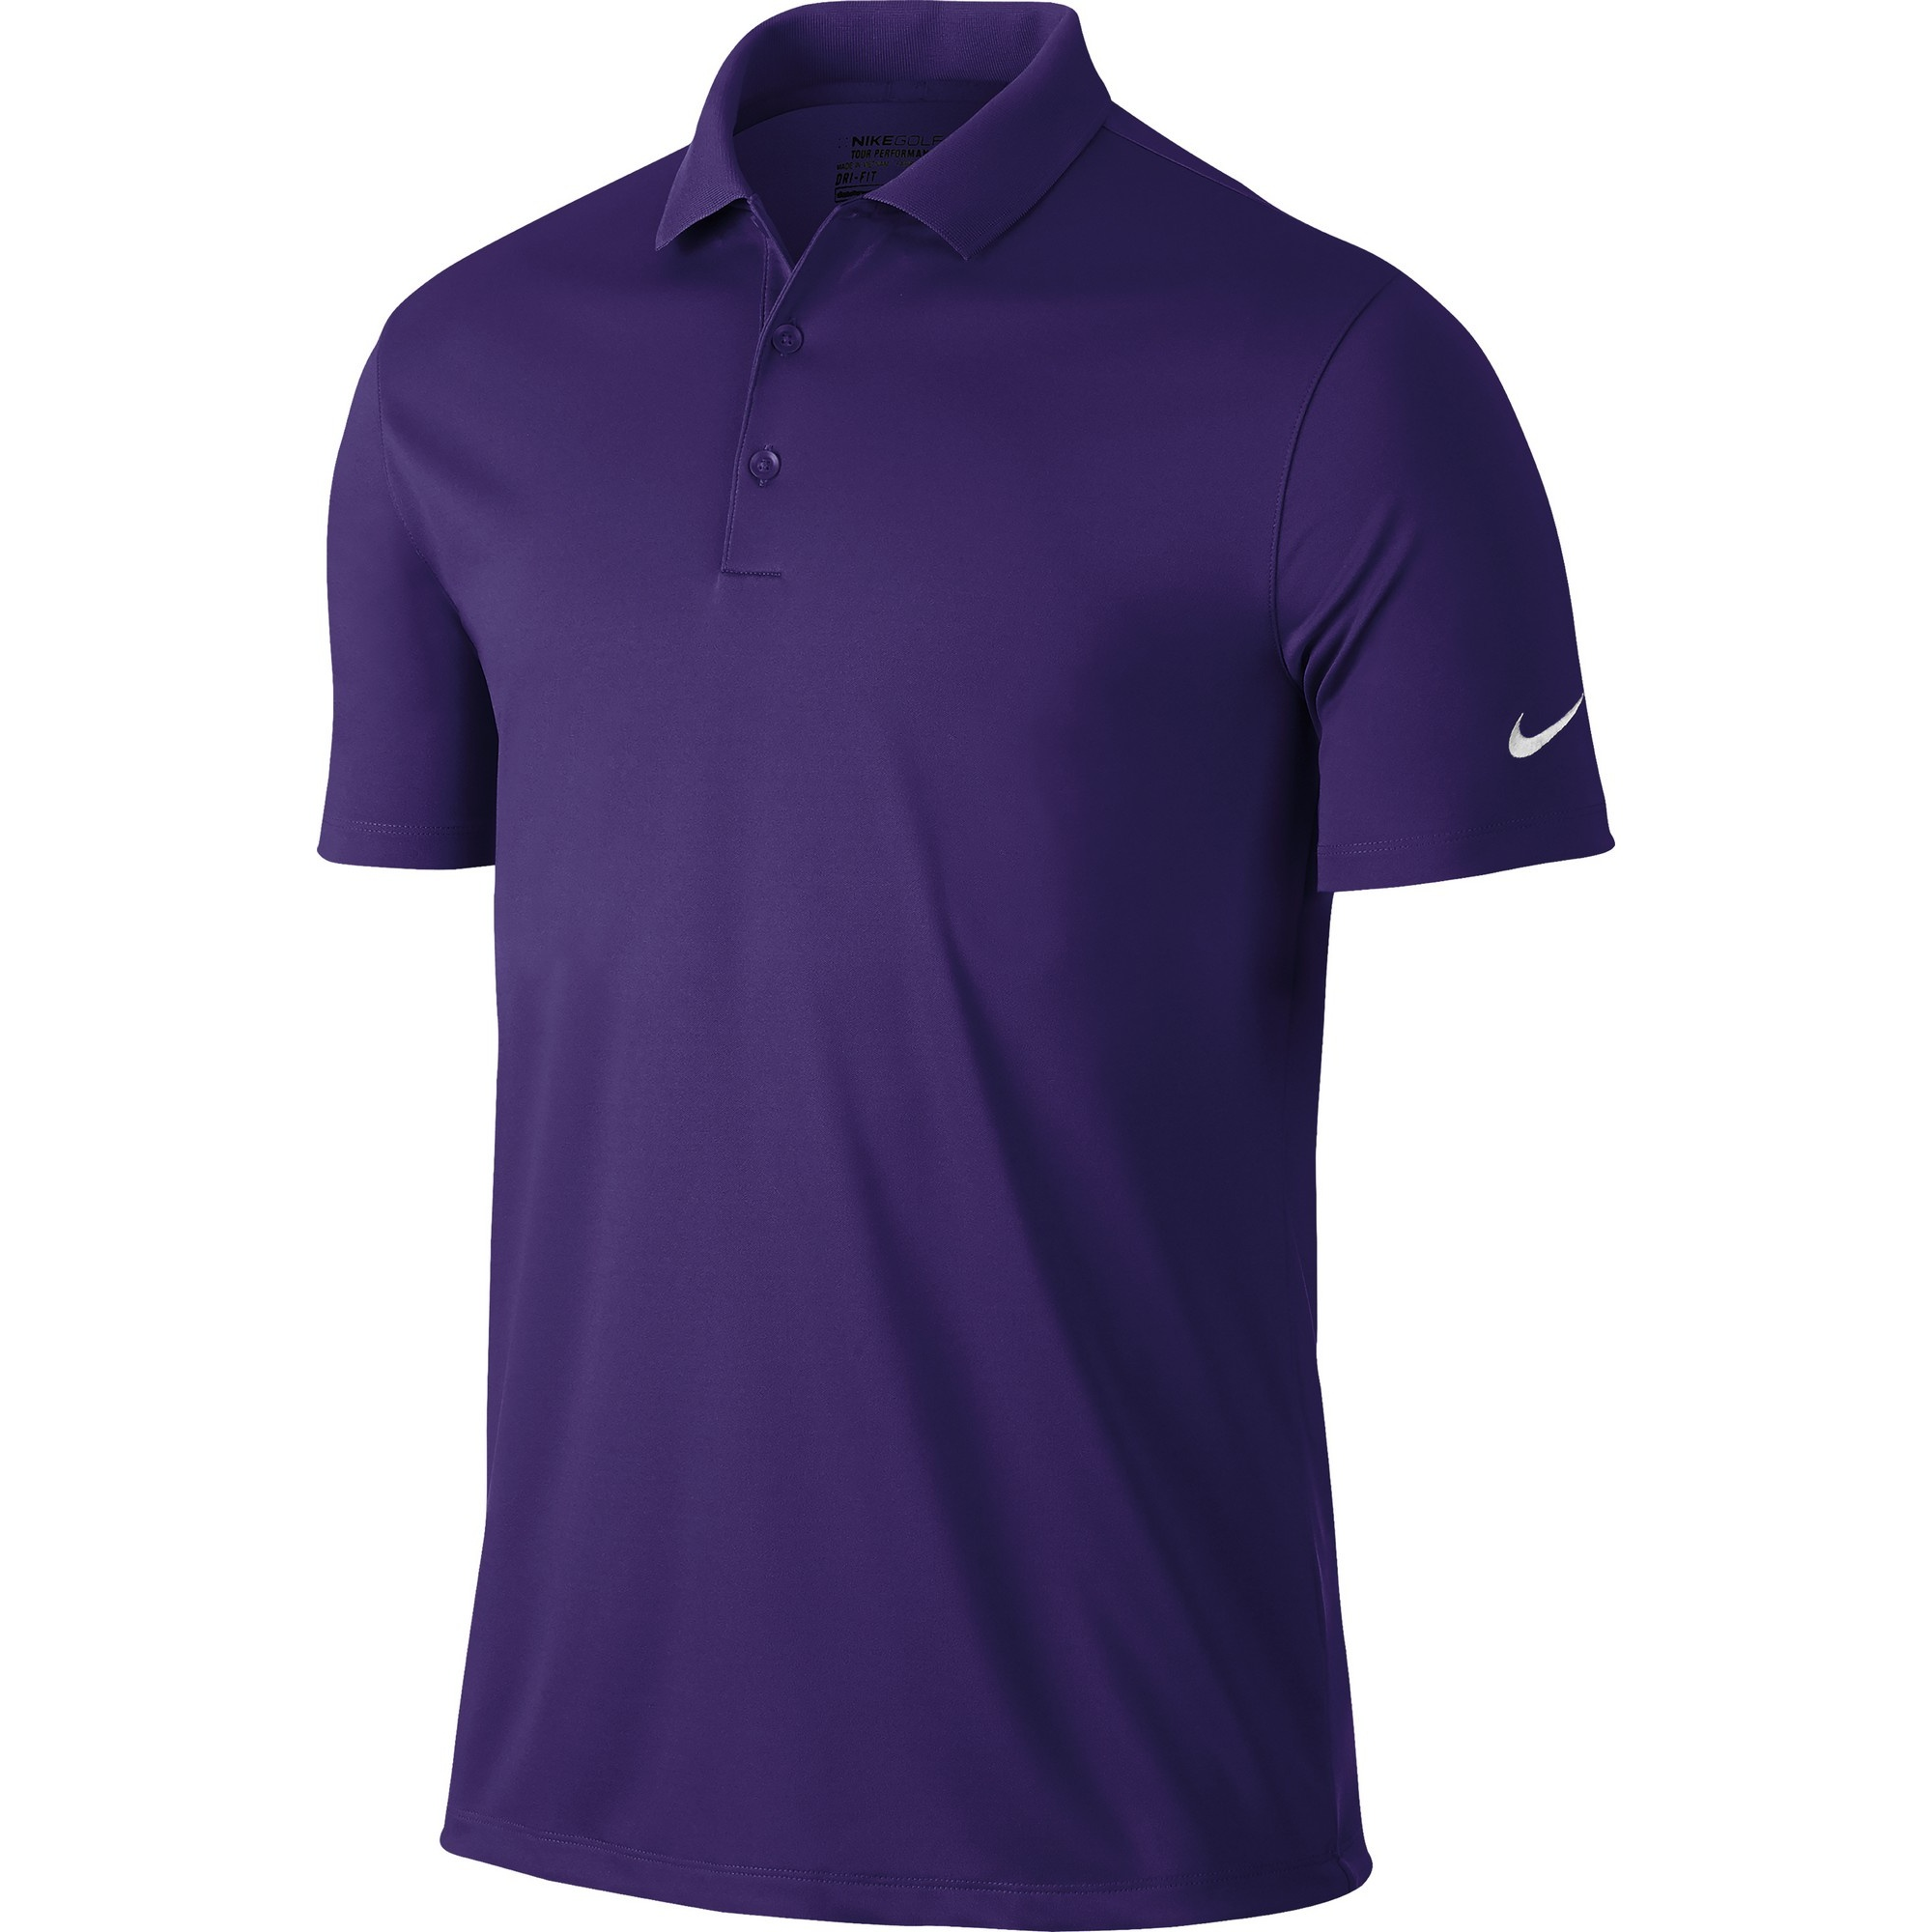 Custom Solid Color & Plain Polos Design Solid Color Golf & Polo Shirts Online. No Minimums or Set-Ups. Design custom solid color polo shirts and golf shirts using your embroidered logo or free design templates. Choose a color that represents your organization or event for a simple custom branding experience. We offer a variety of men's and.